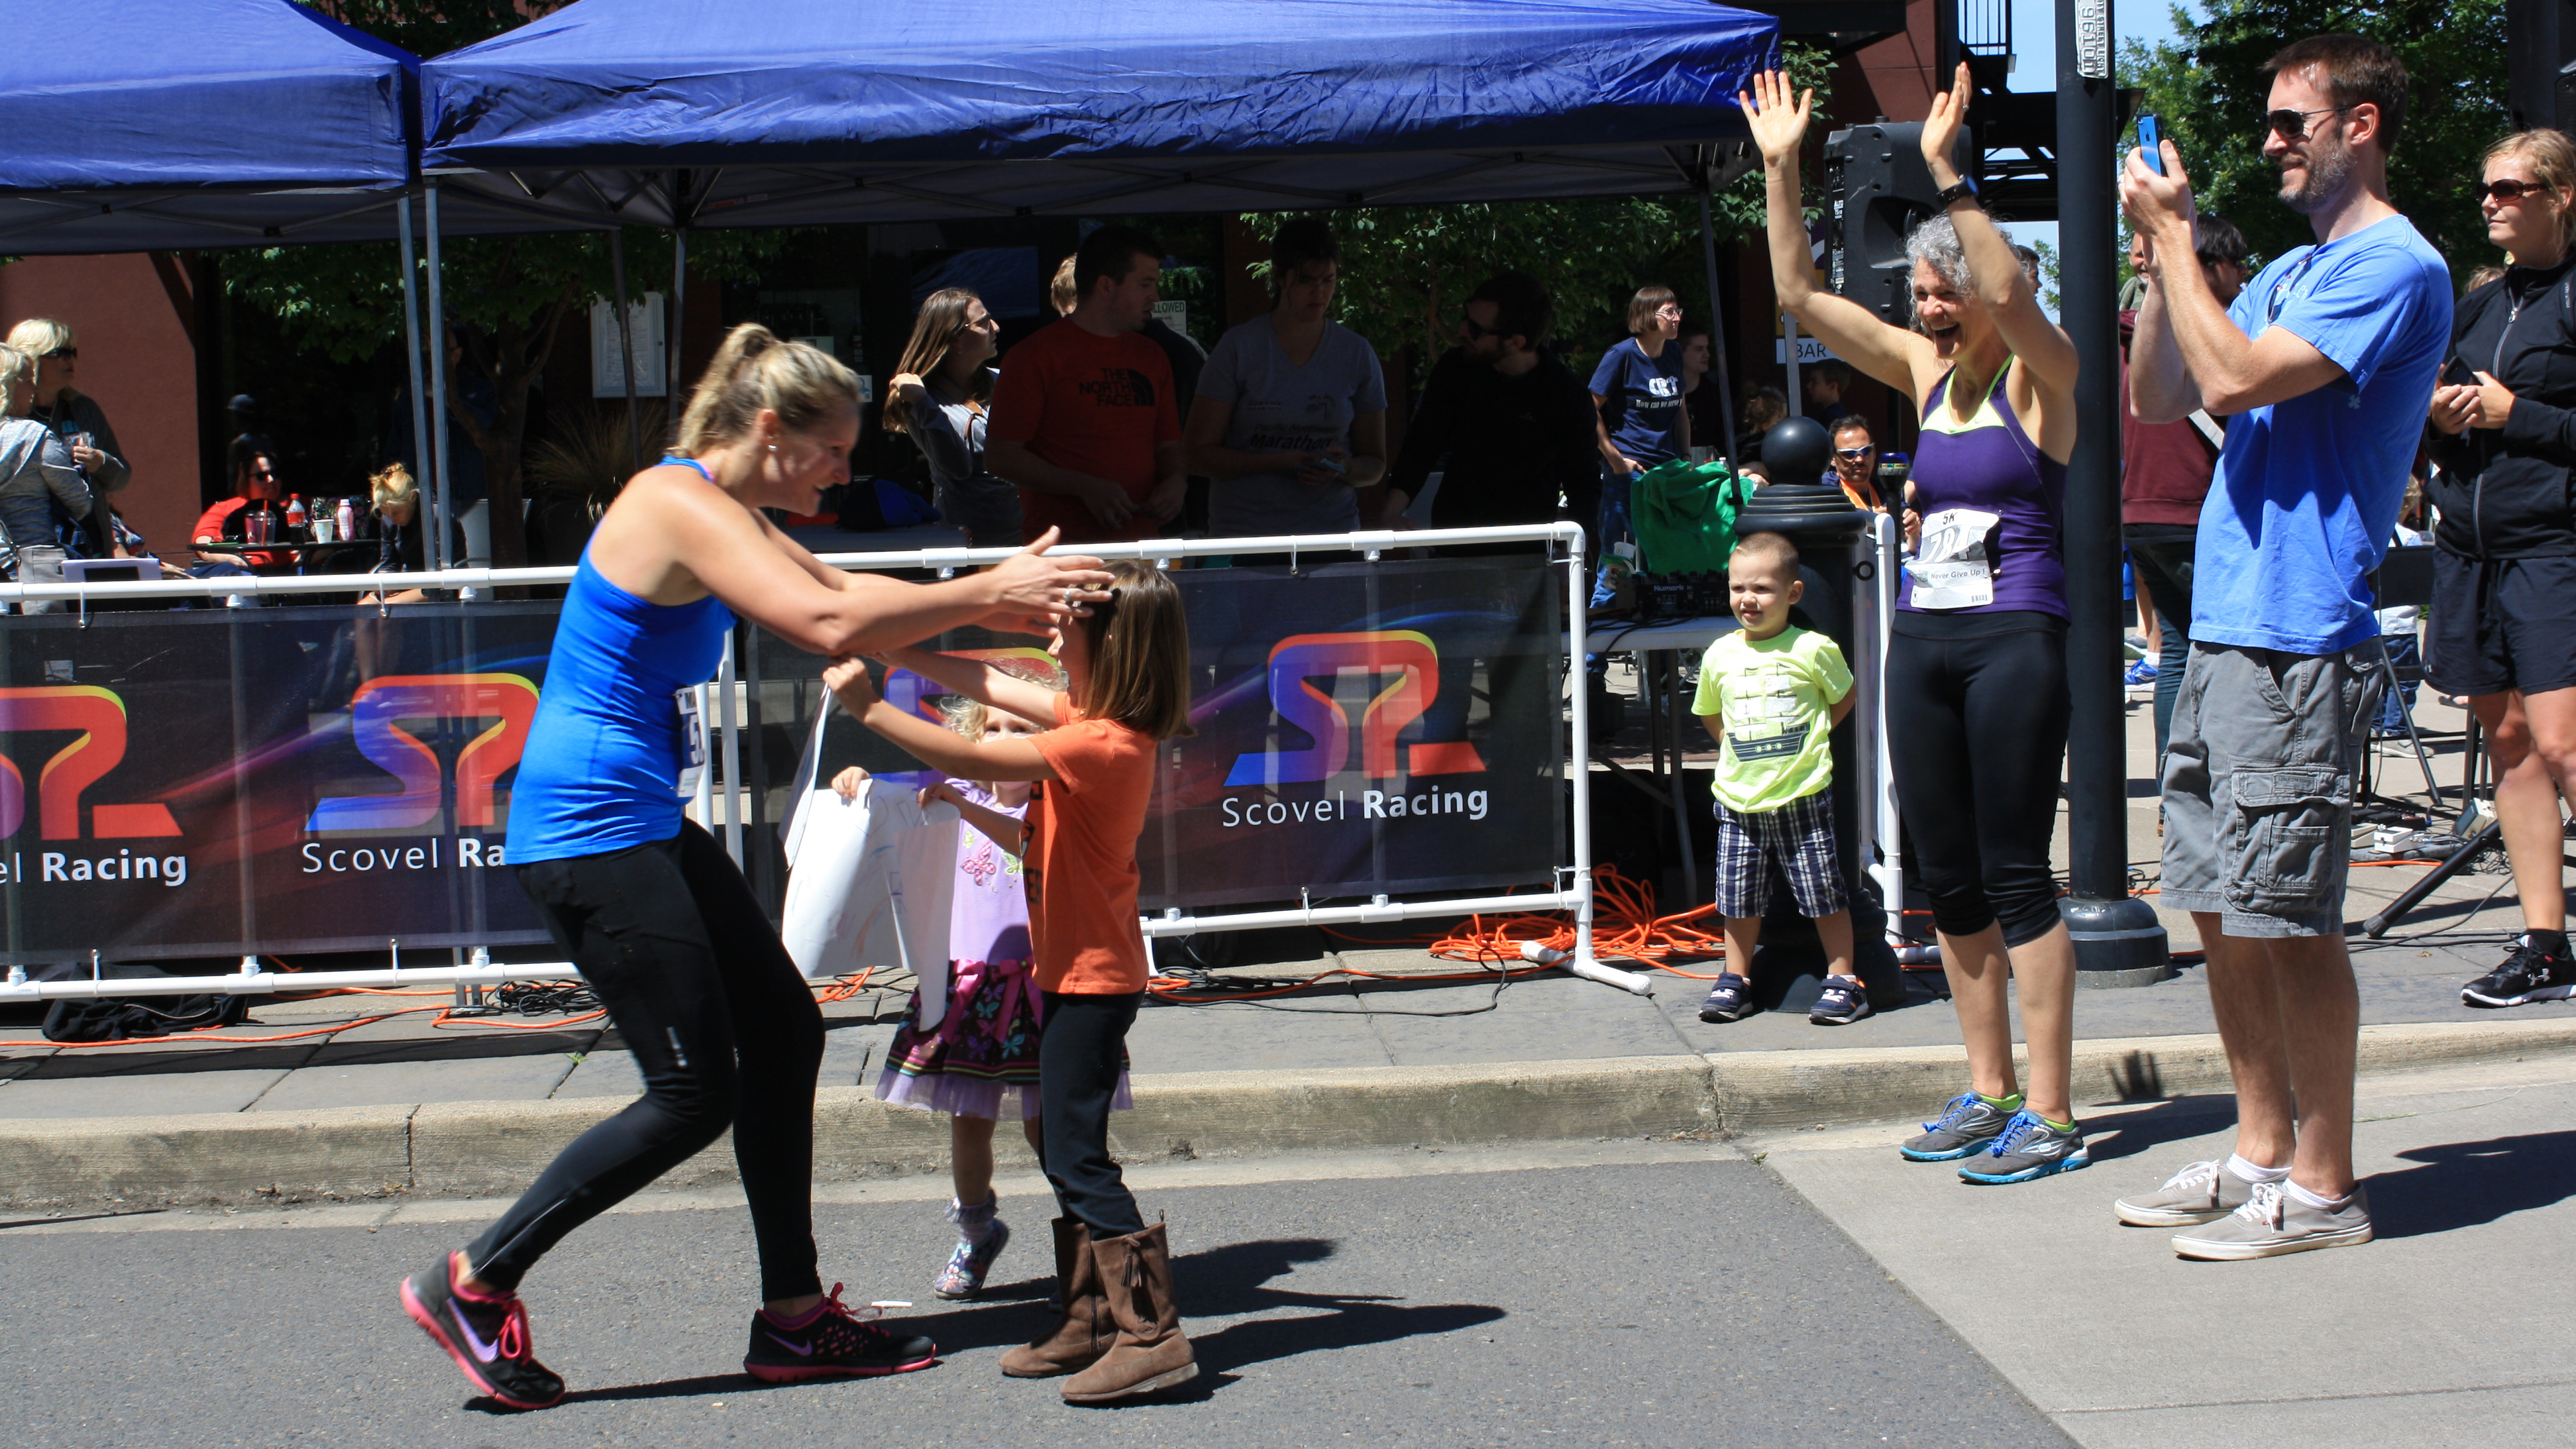 How to Choose a Marathon, Mom Finishes and Runs Into Arms of Daughter